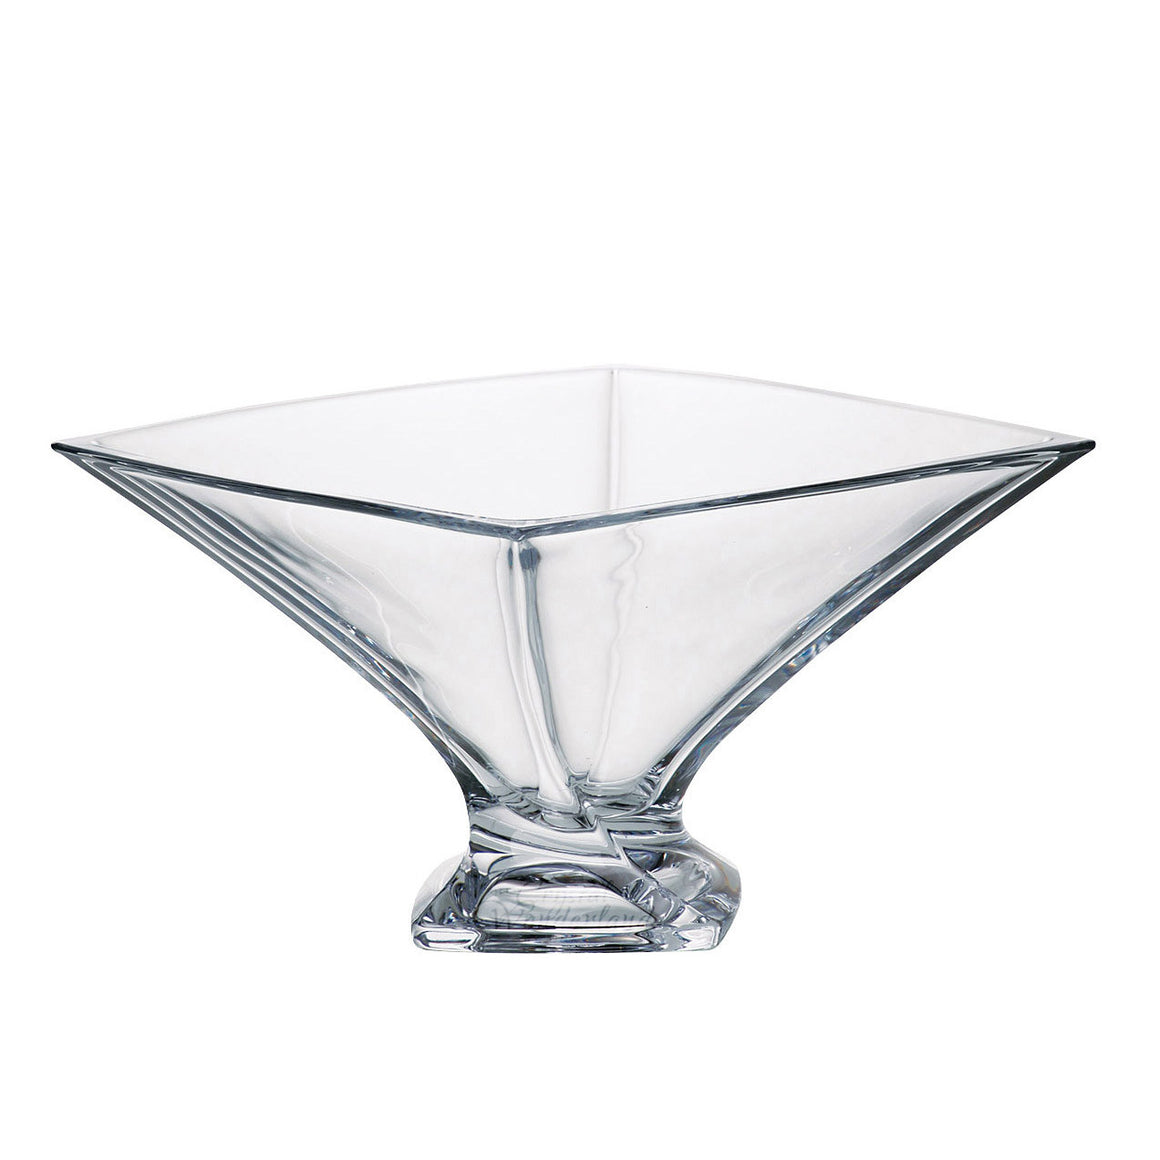 Calypso Square Glass Bowl - The Crystal Wonderland